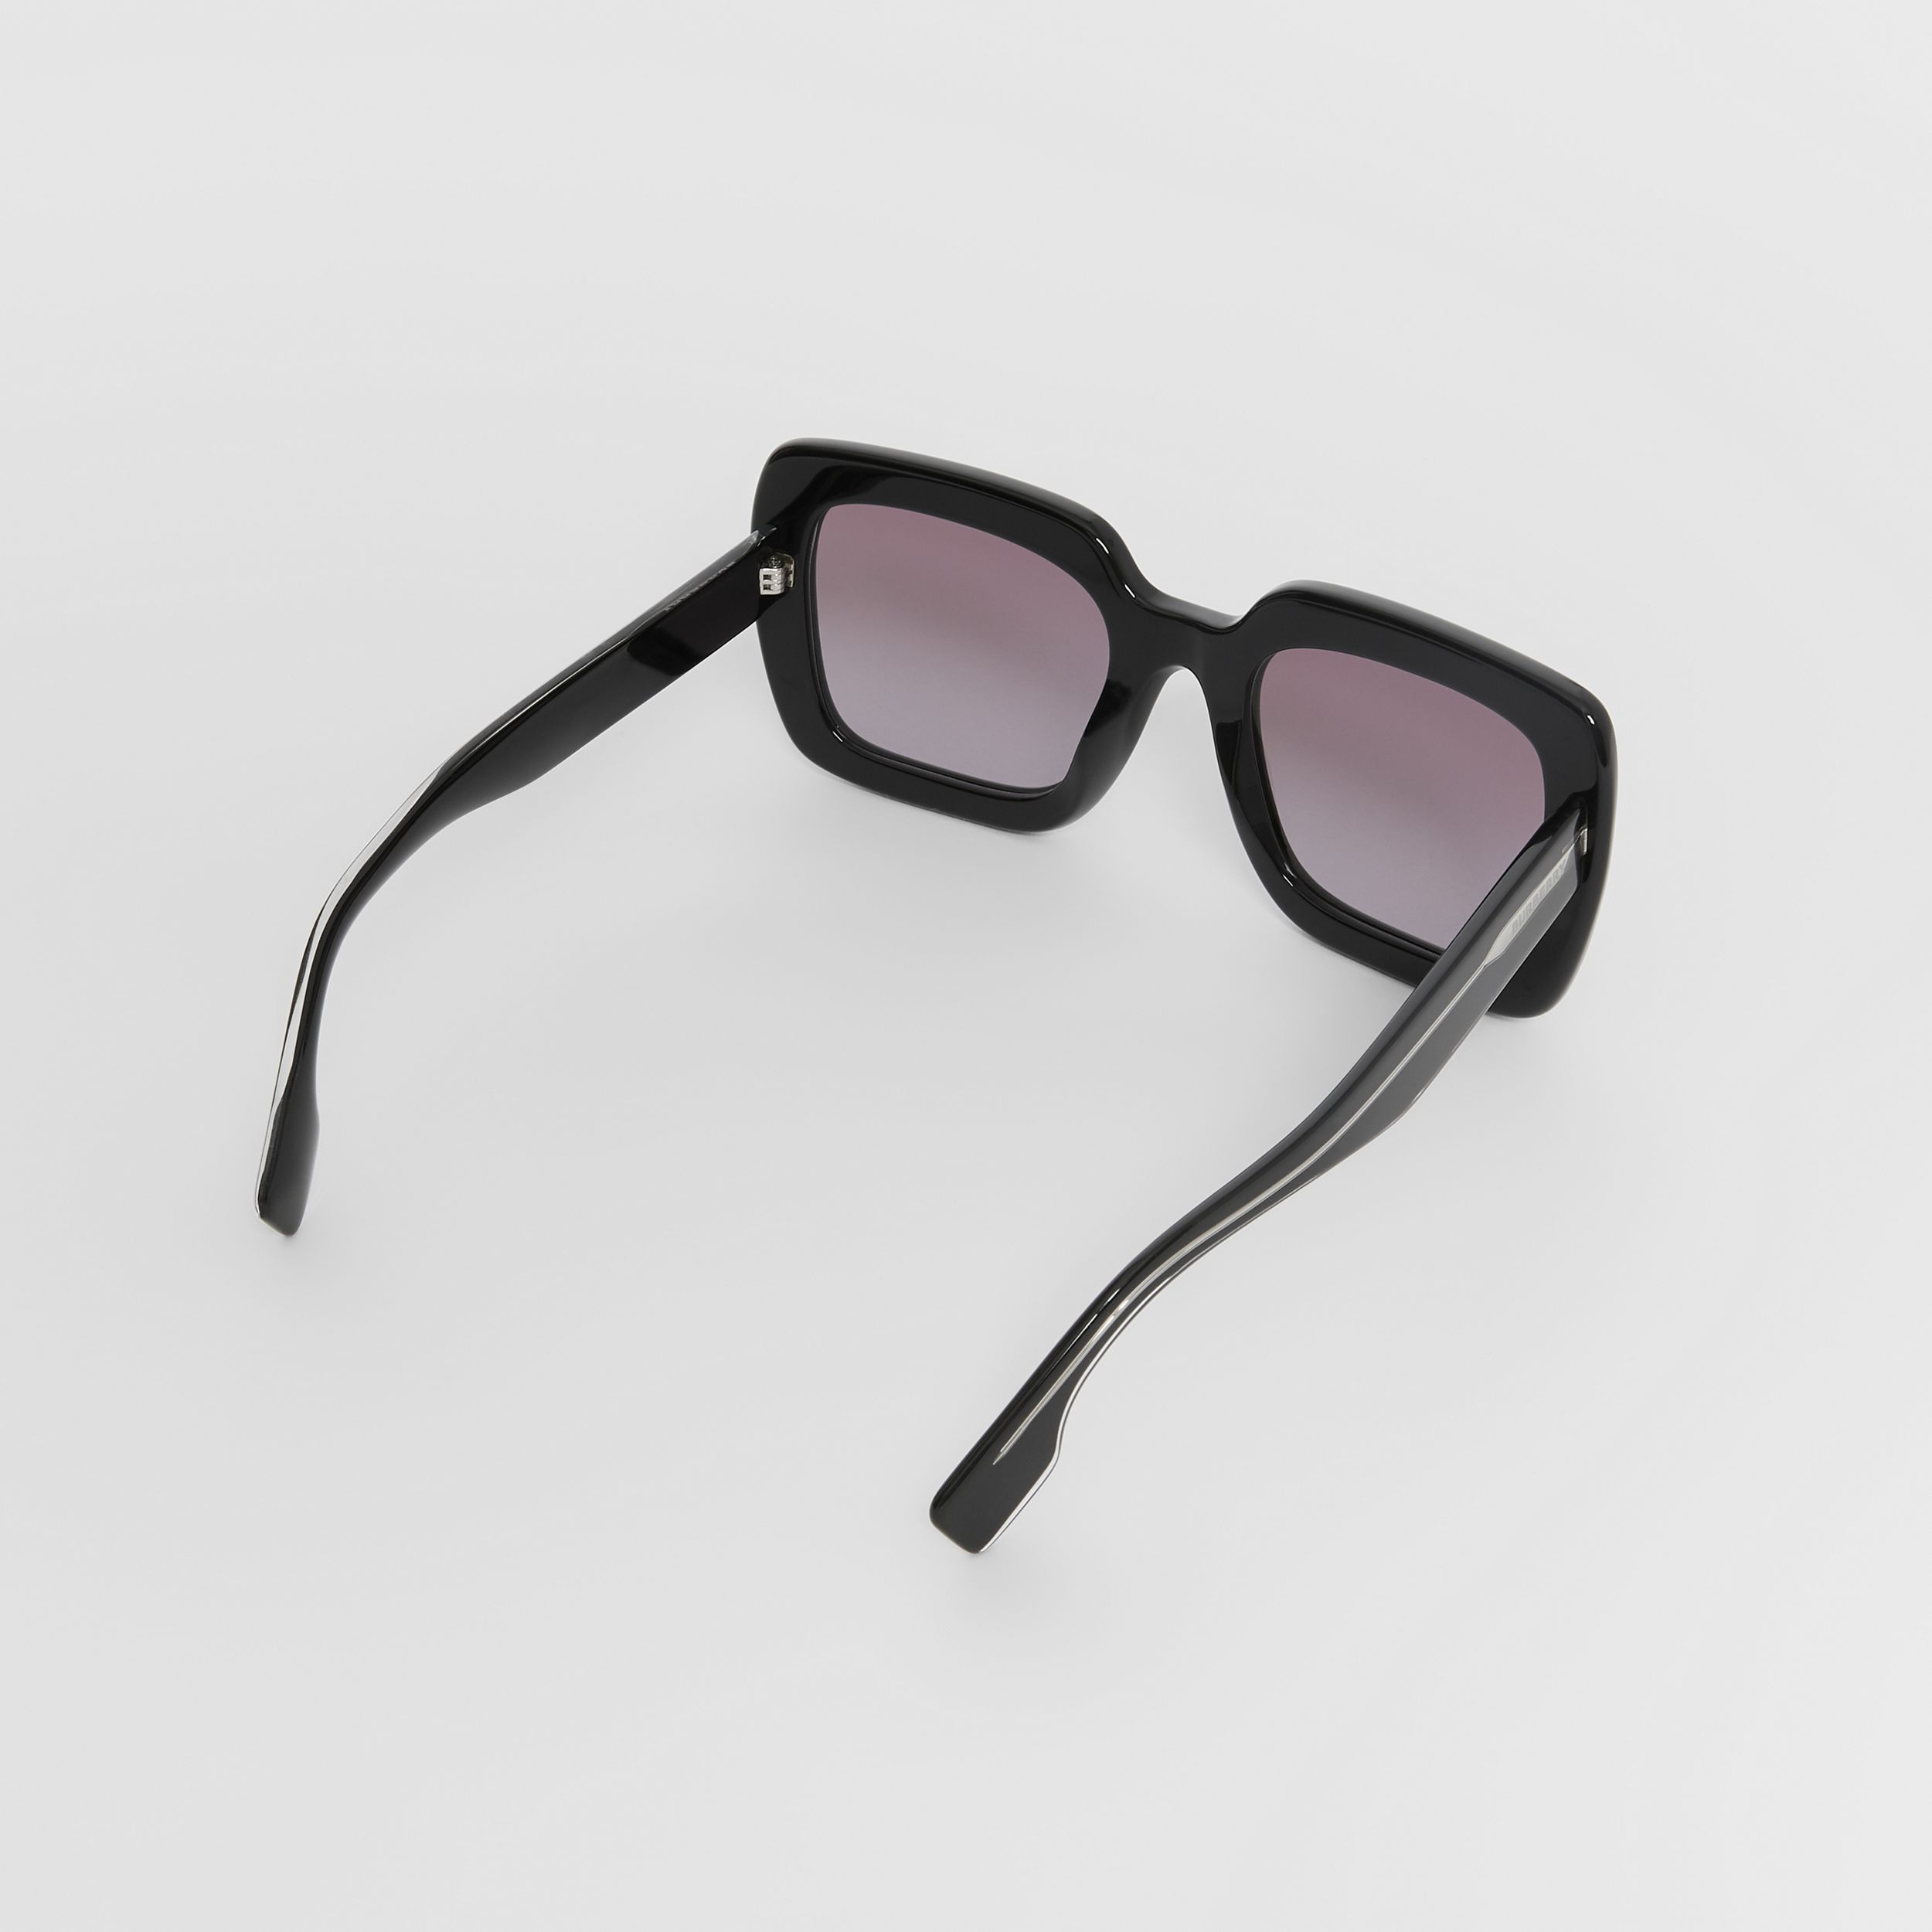 Oversized Square Frame Sunglasses in Black - Women | Burberry Hong Kong S.A.R. - 4